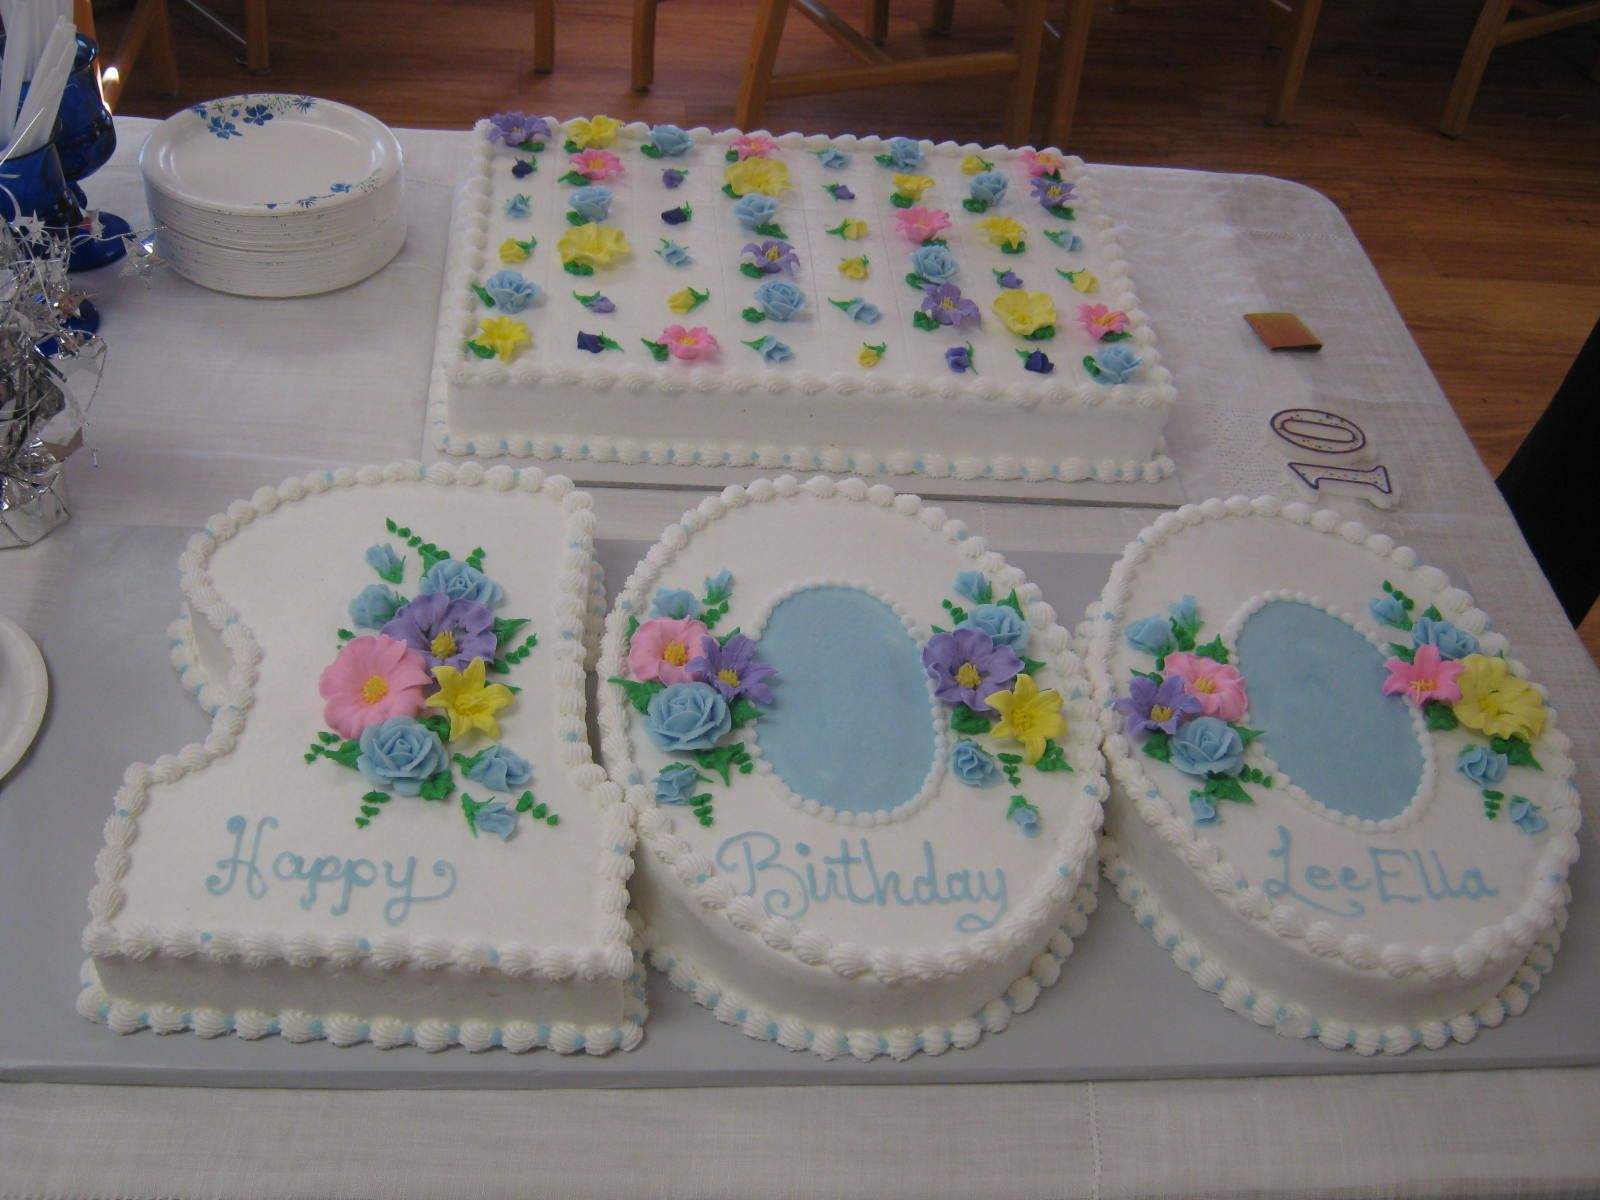 Our Dear Friend Lee Ella Moores 100th Birthday Cake Isnt It Beautiful